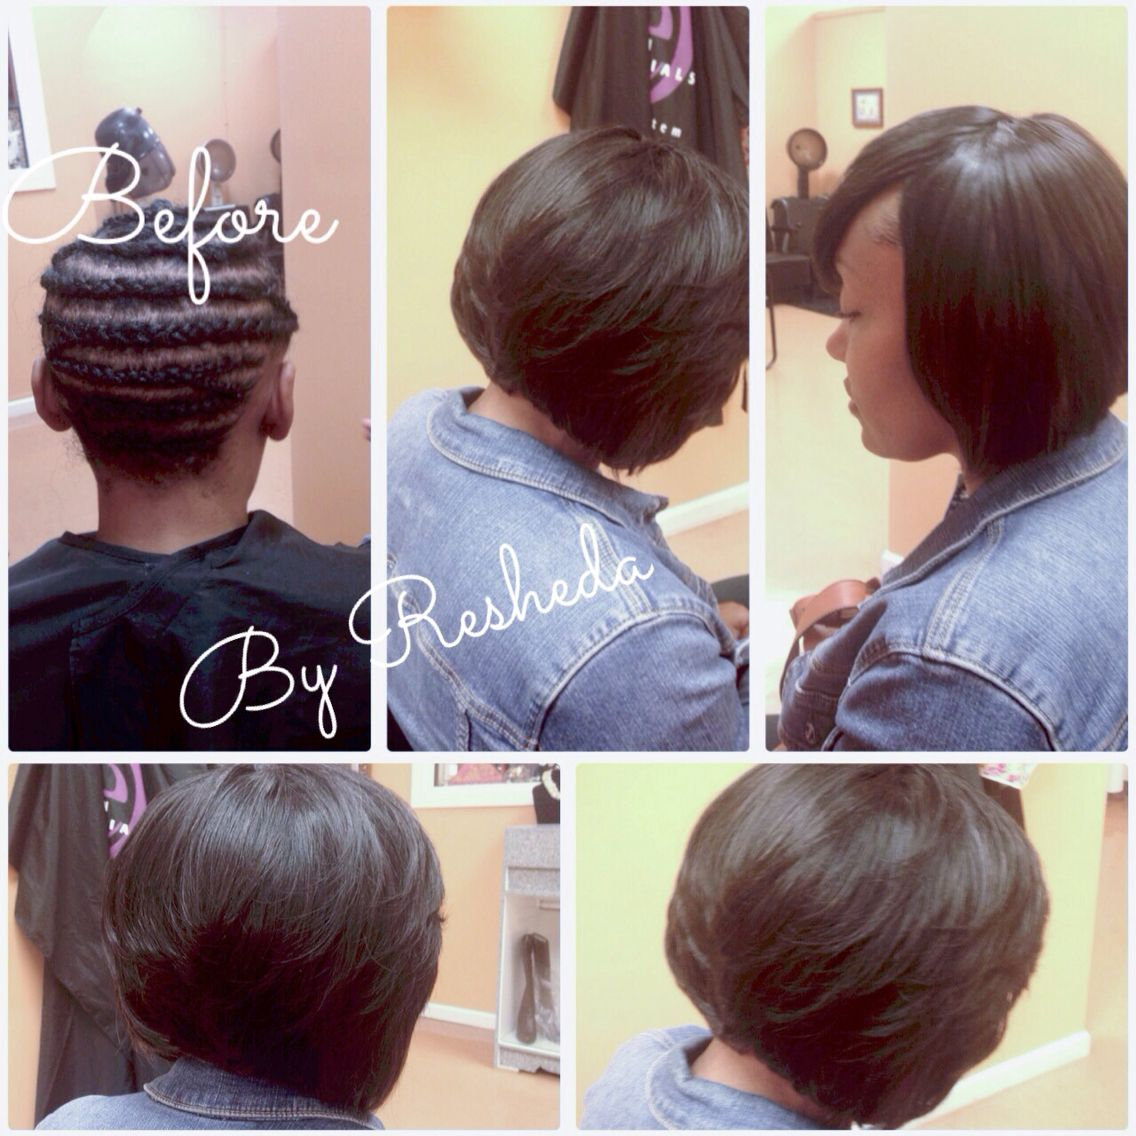 full sew-in bob✂️no leave out #sewinbob #sewinstyle #bobaction